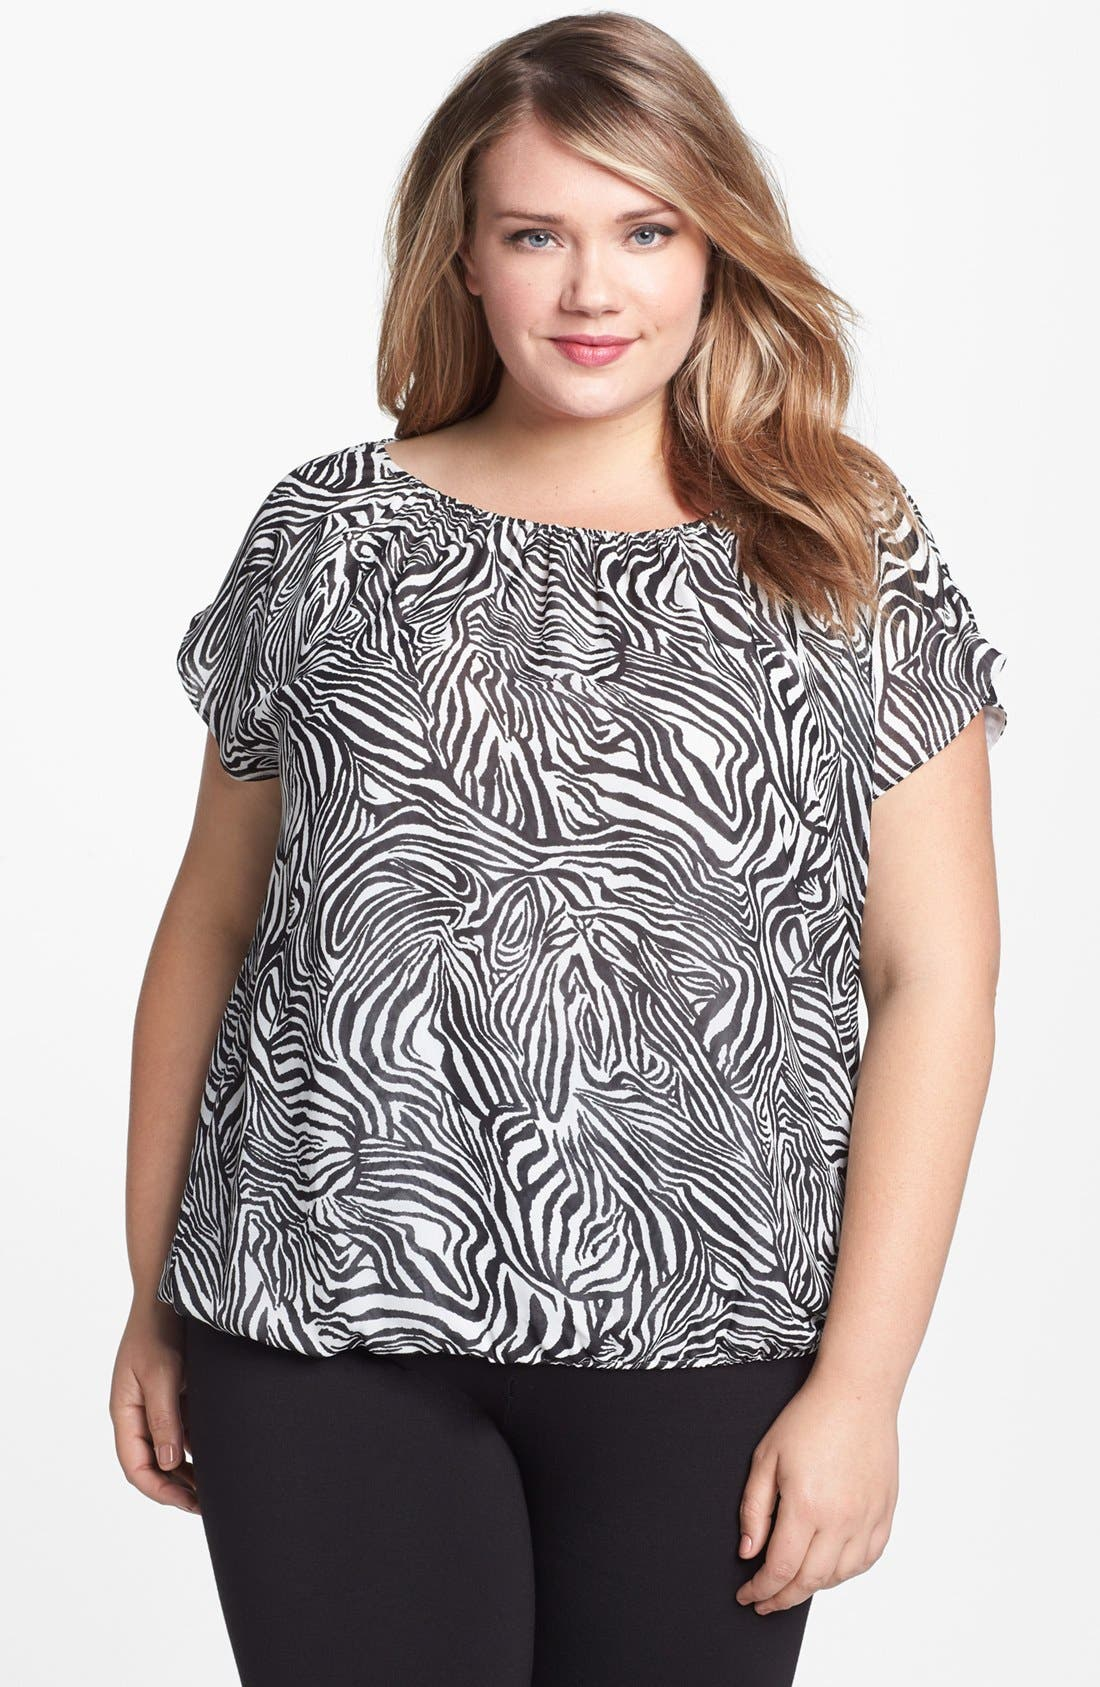 Alternate Image 1 Selected - Vince Camuto Zebra Print Blouse (Plus Size)